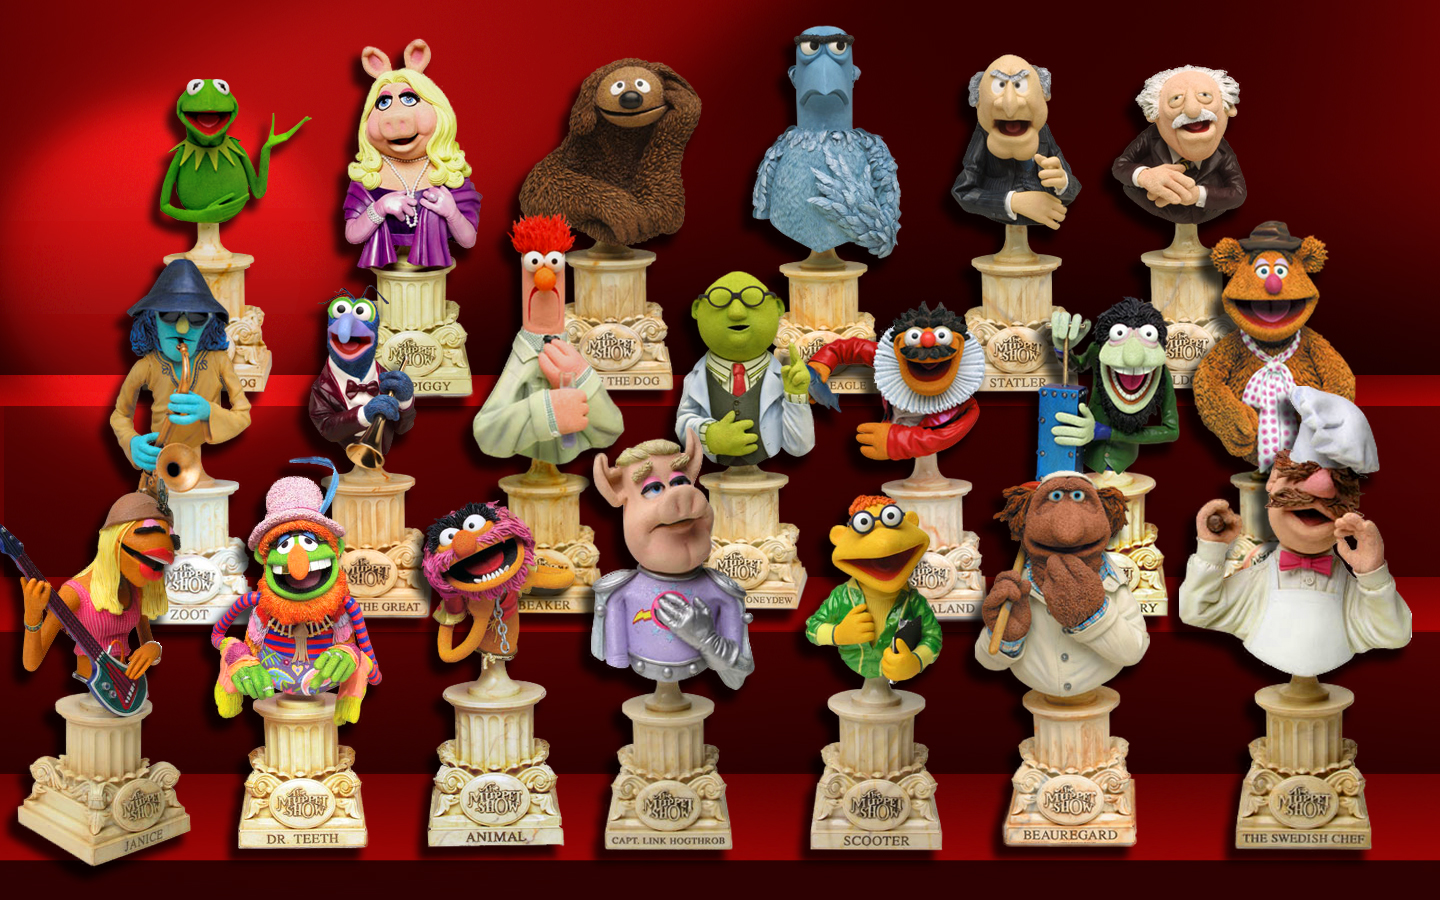 Muppet busts on oscar and slimey figures